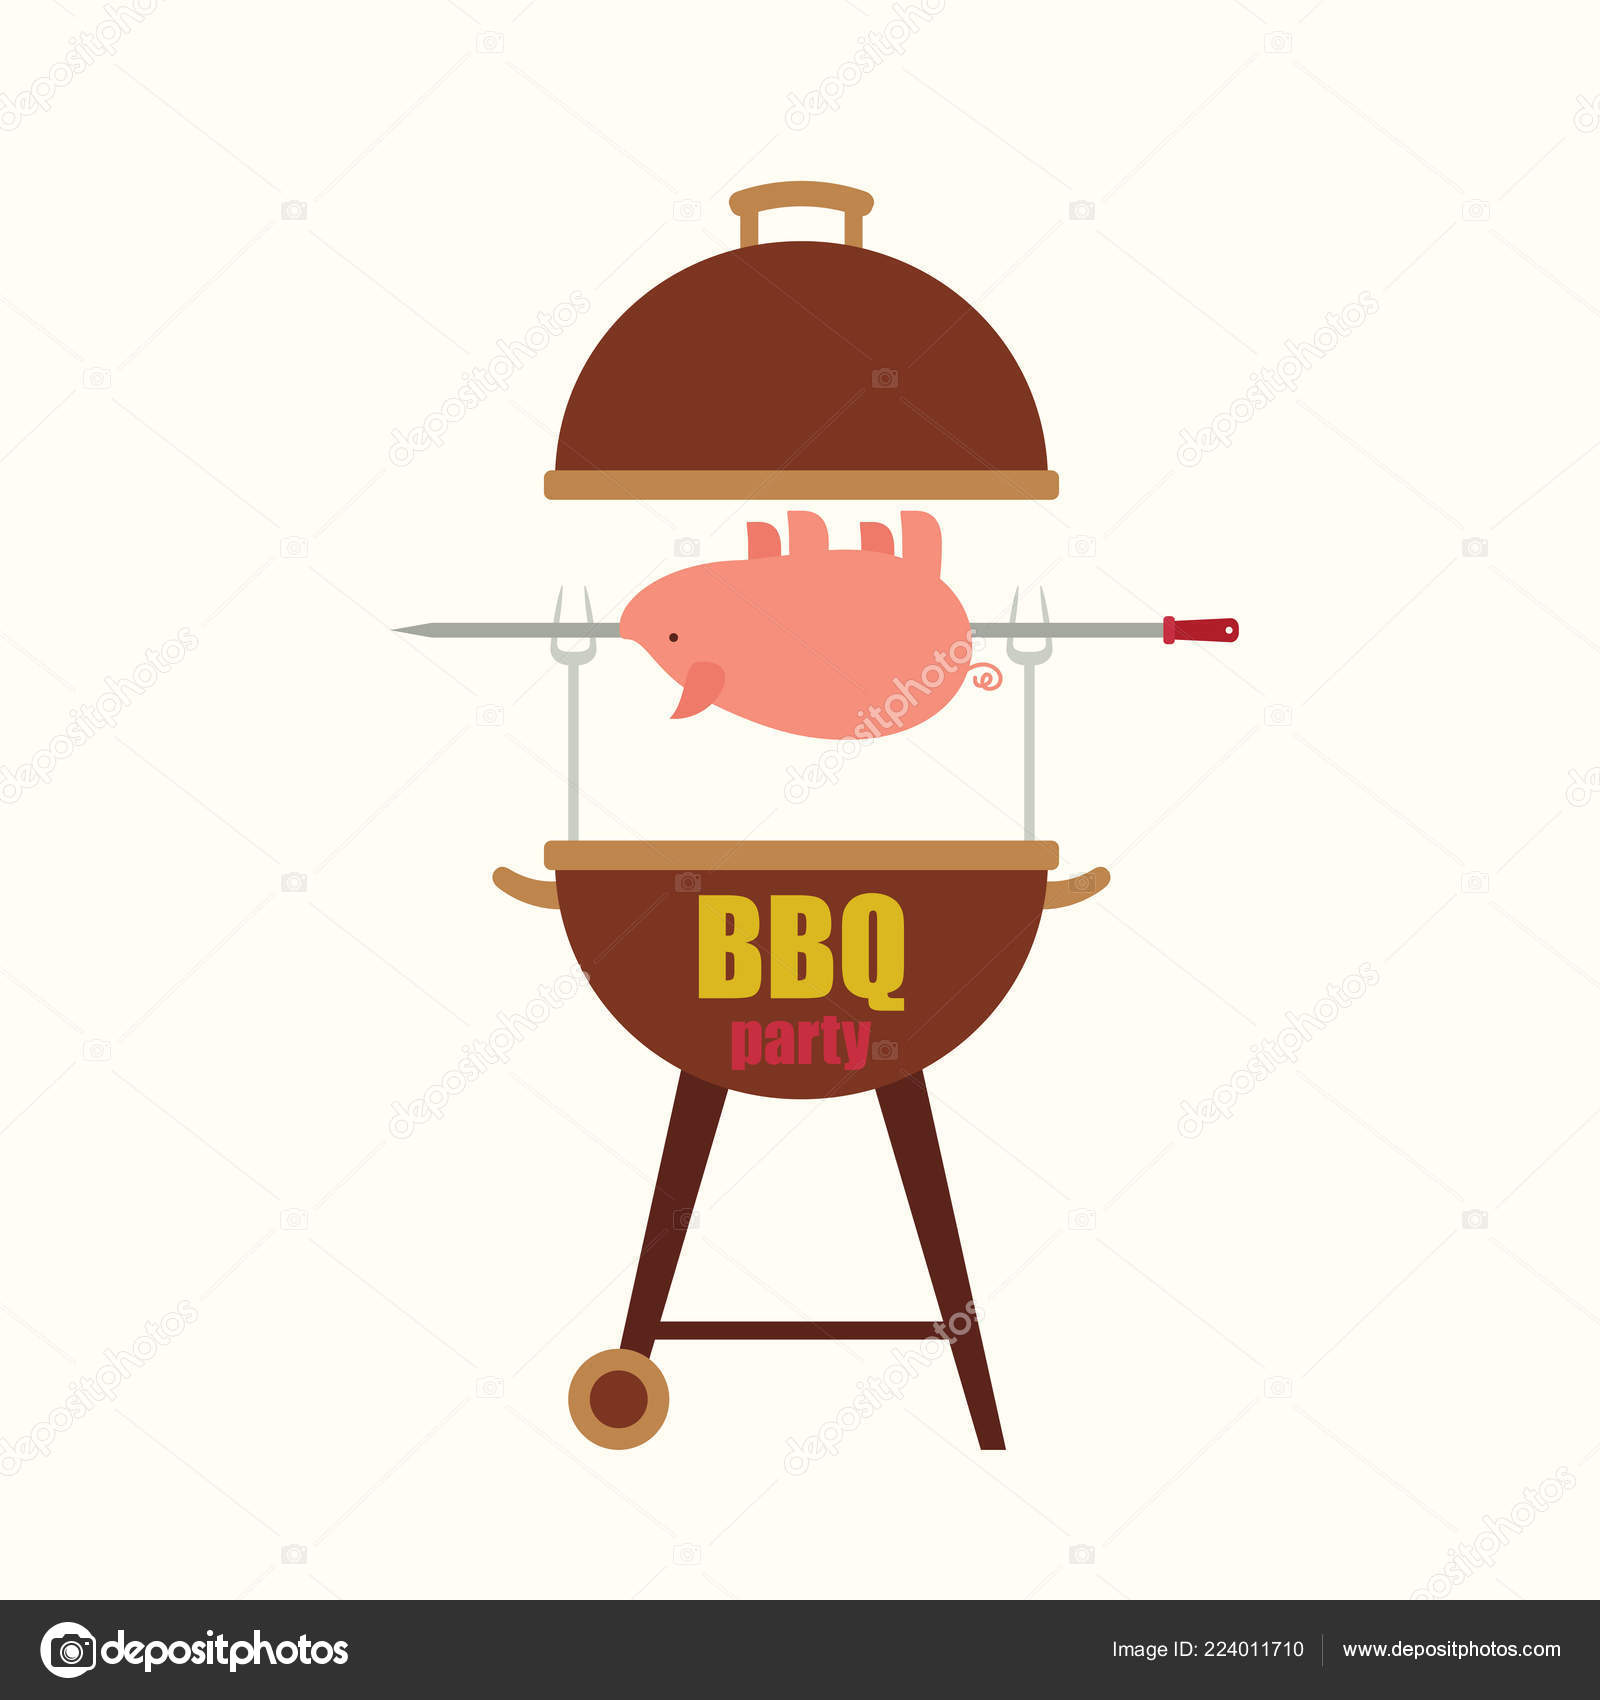 Bbq/barbecue Party Blank Invitation Template With A Pig